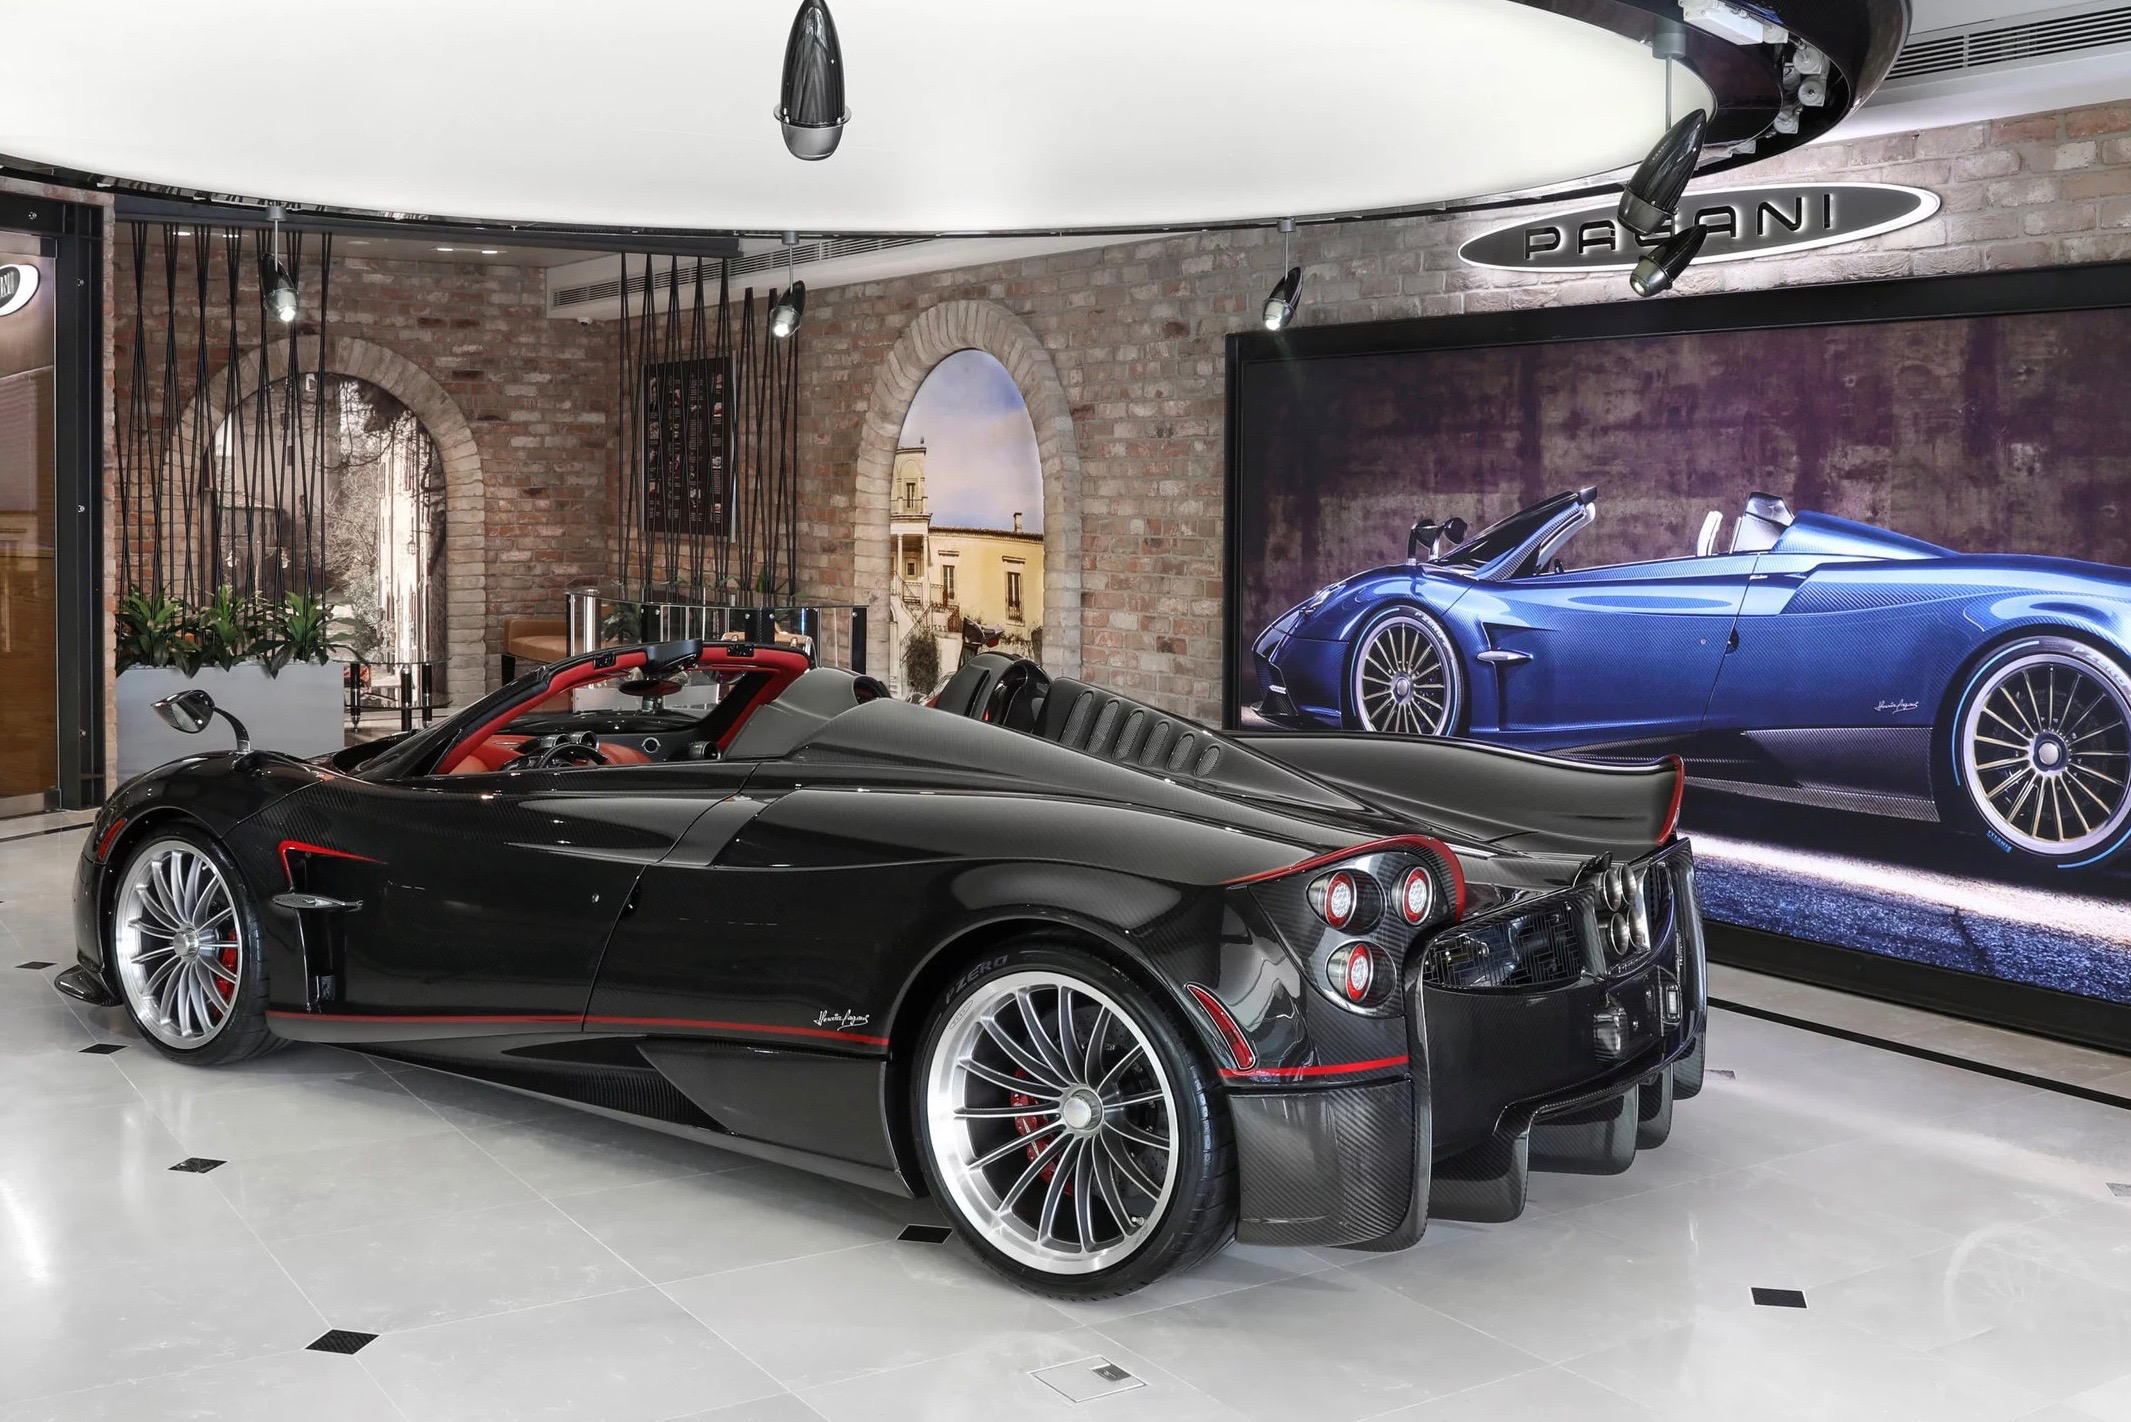 Horacio Pagani helps open first Pagani dealership in Australia ...